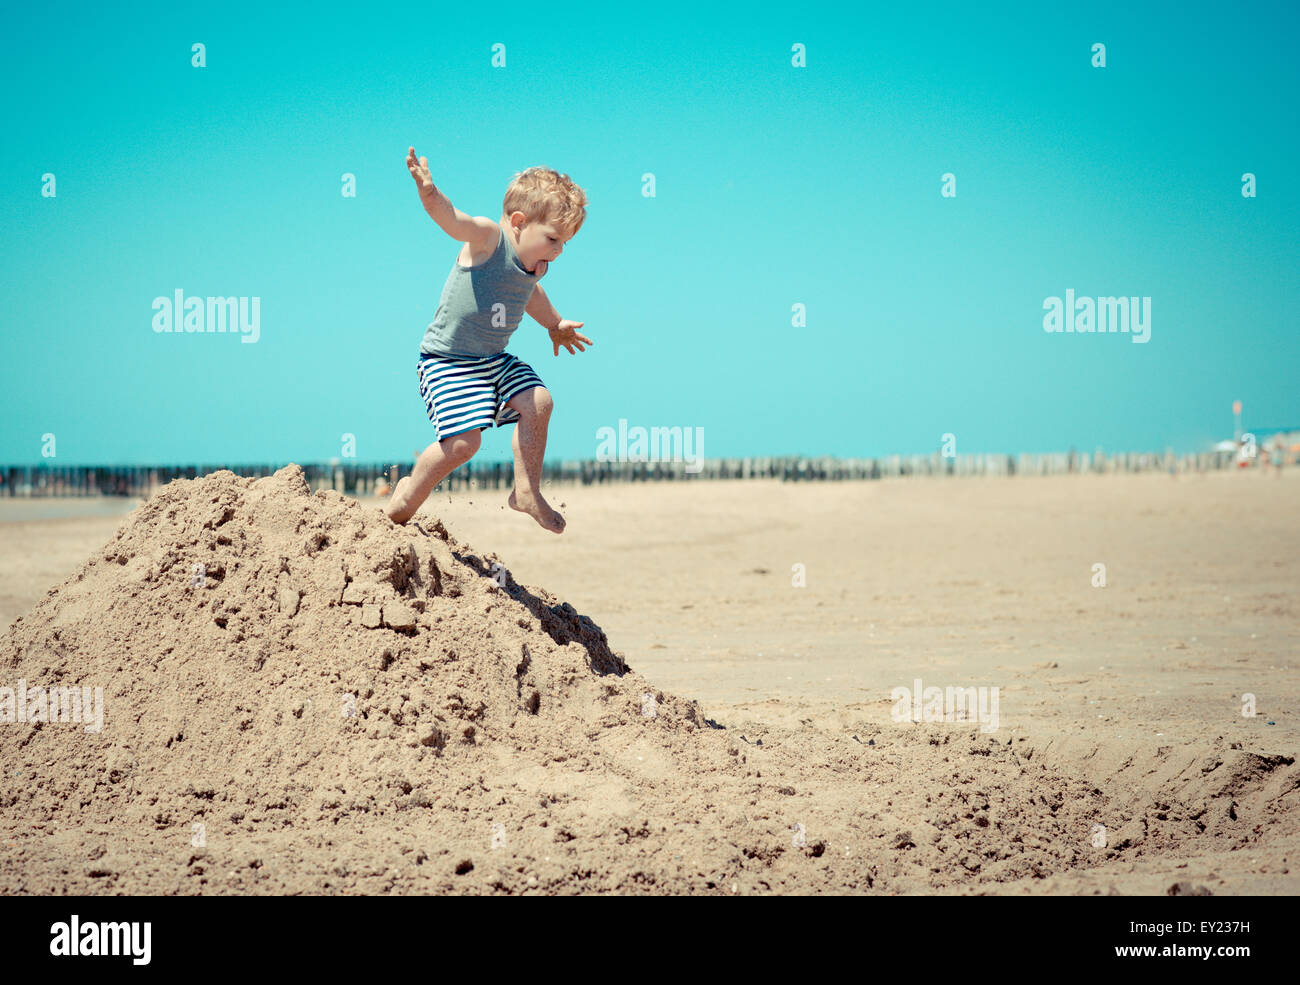 little boy child on the beach jumping from a hill - Stock Image